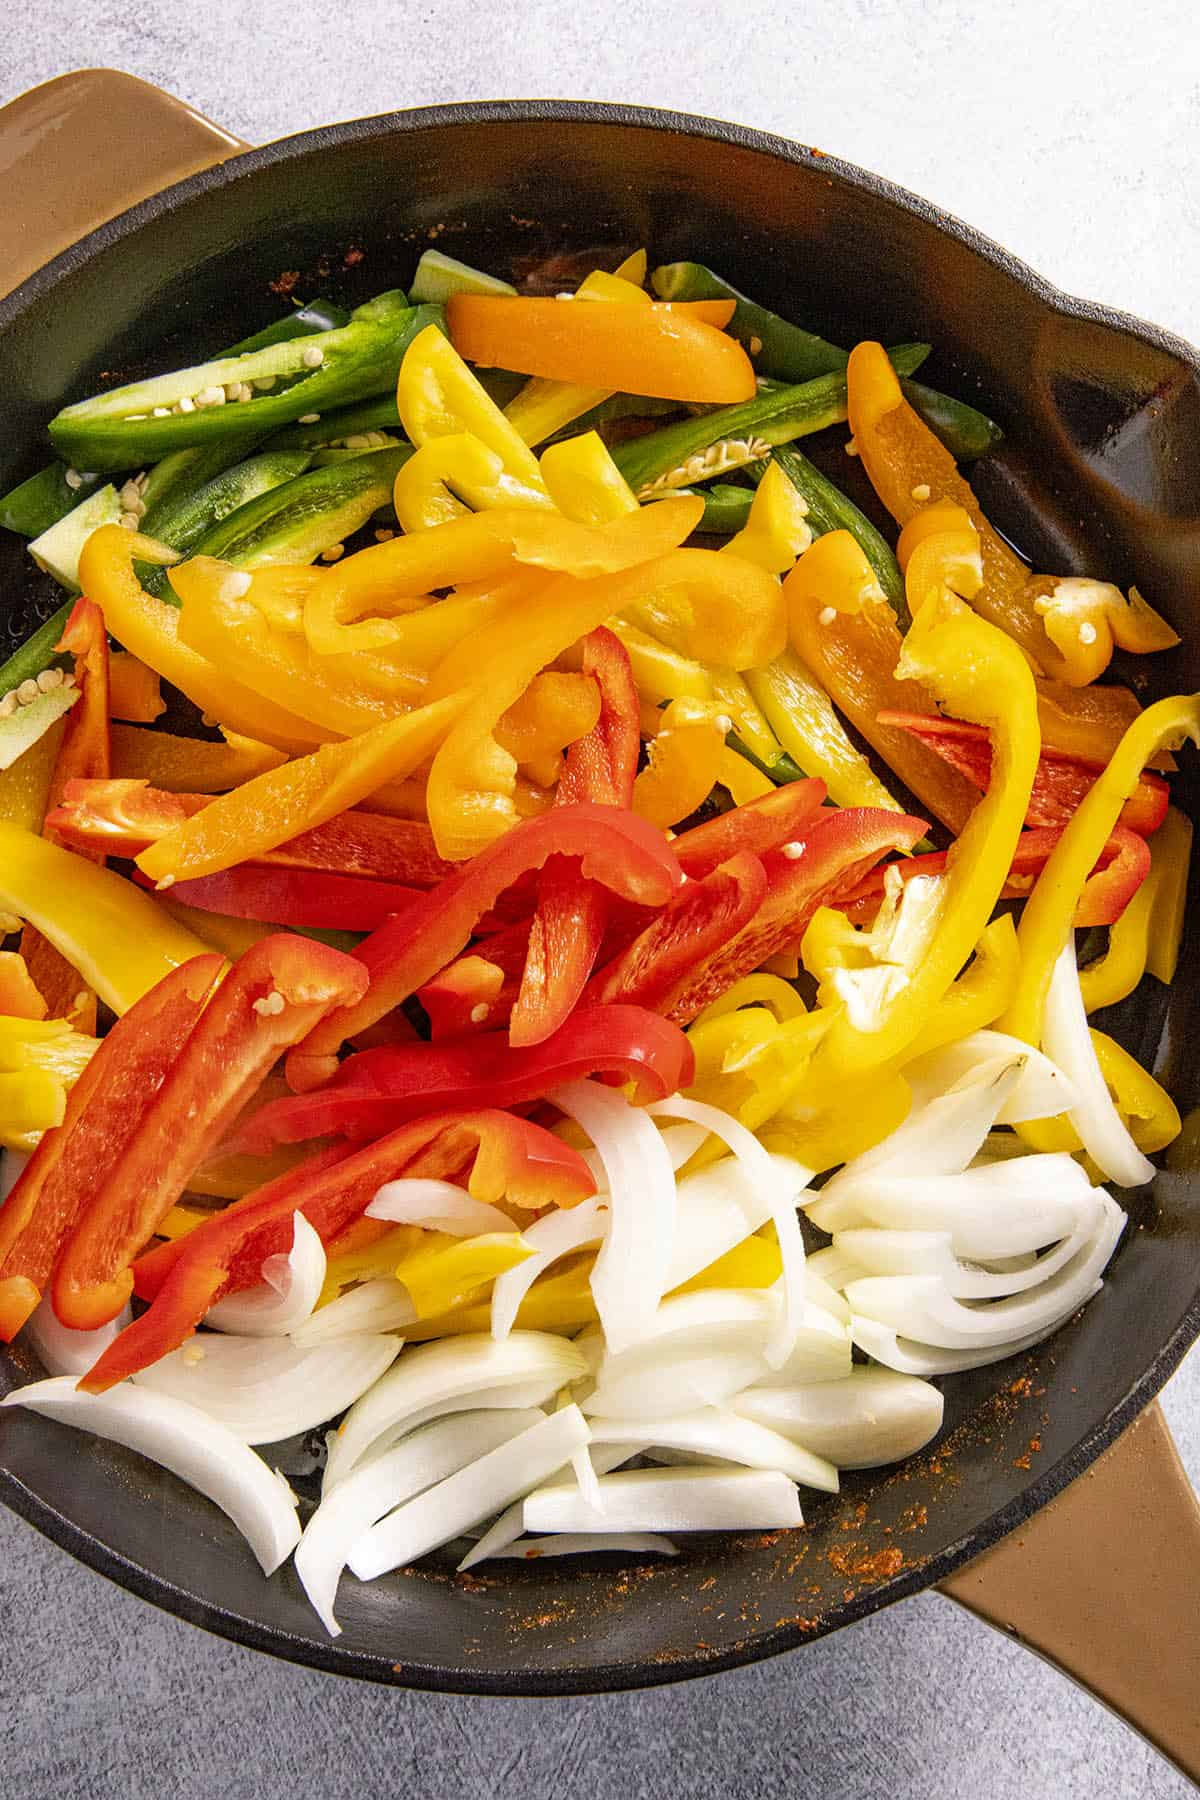 Cooking peppers and onions to make chicken fajitas